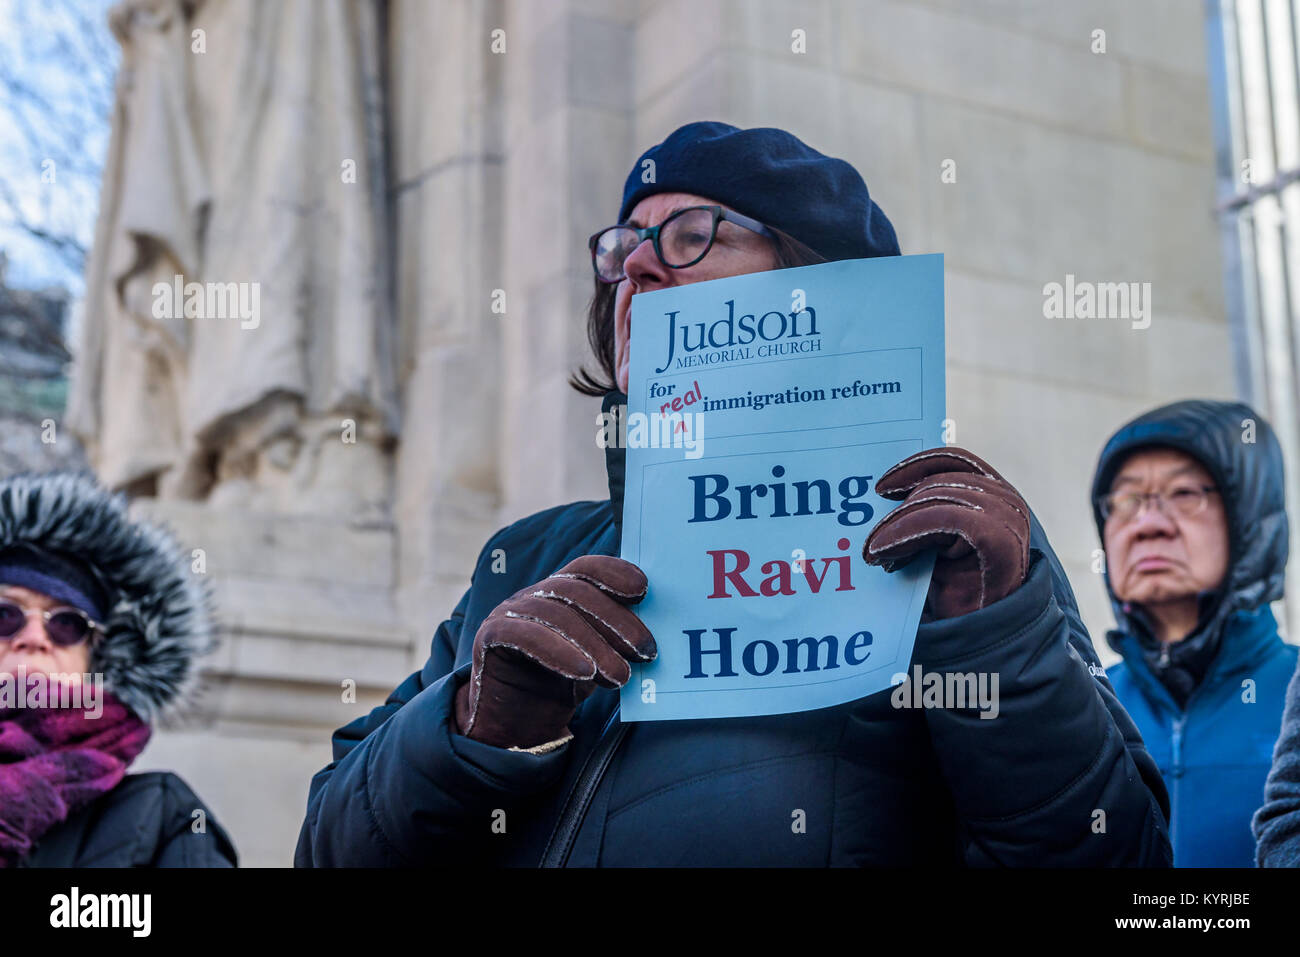 New York, United States. 15th Jan, 2018. In the spirit of Dr. Martin Luther King Jr., faith leaders, and immigration - Stock Image